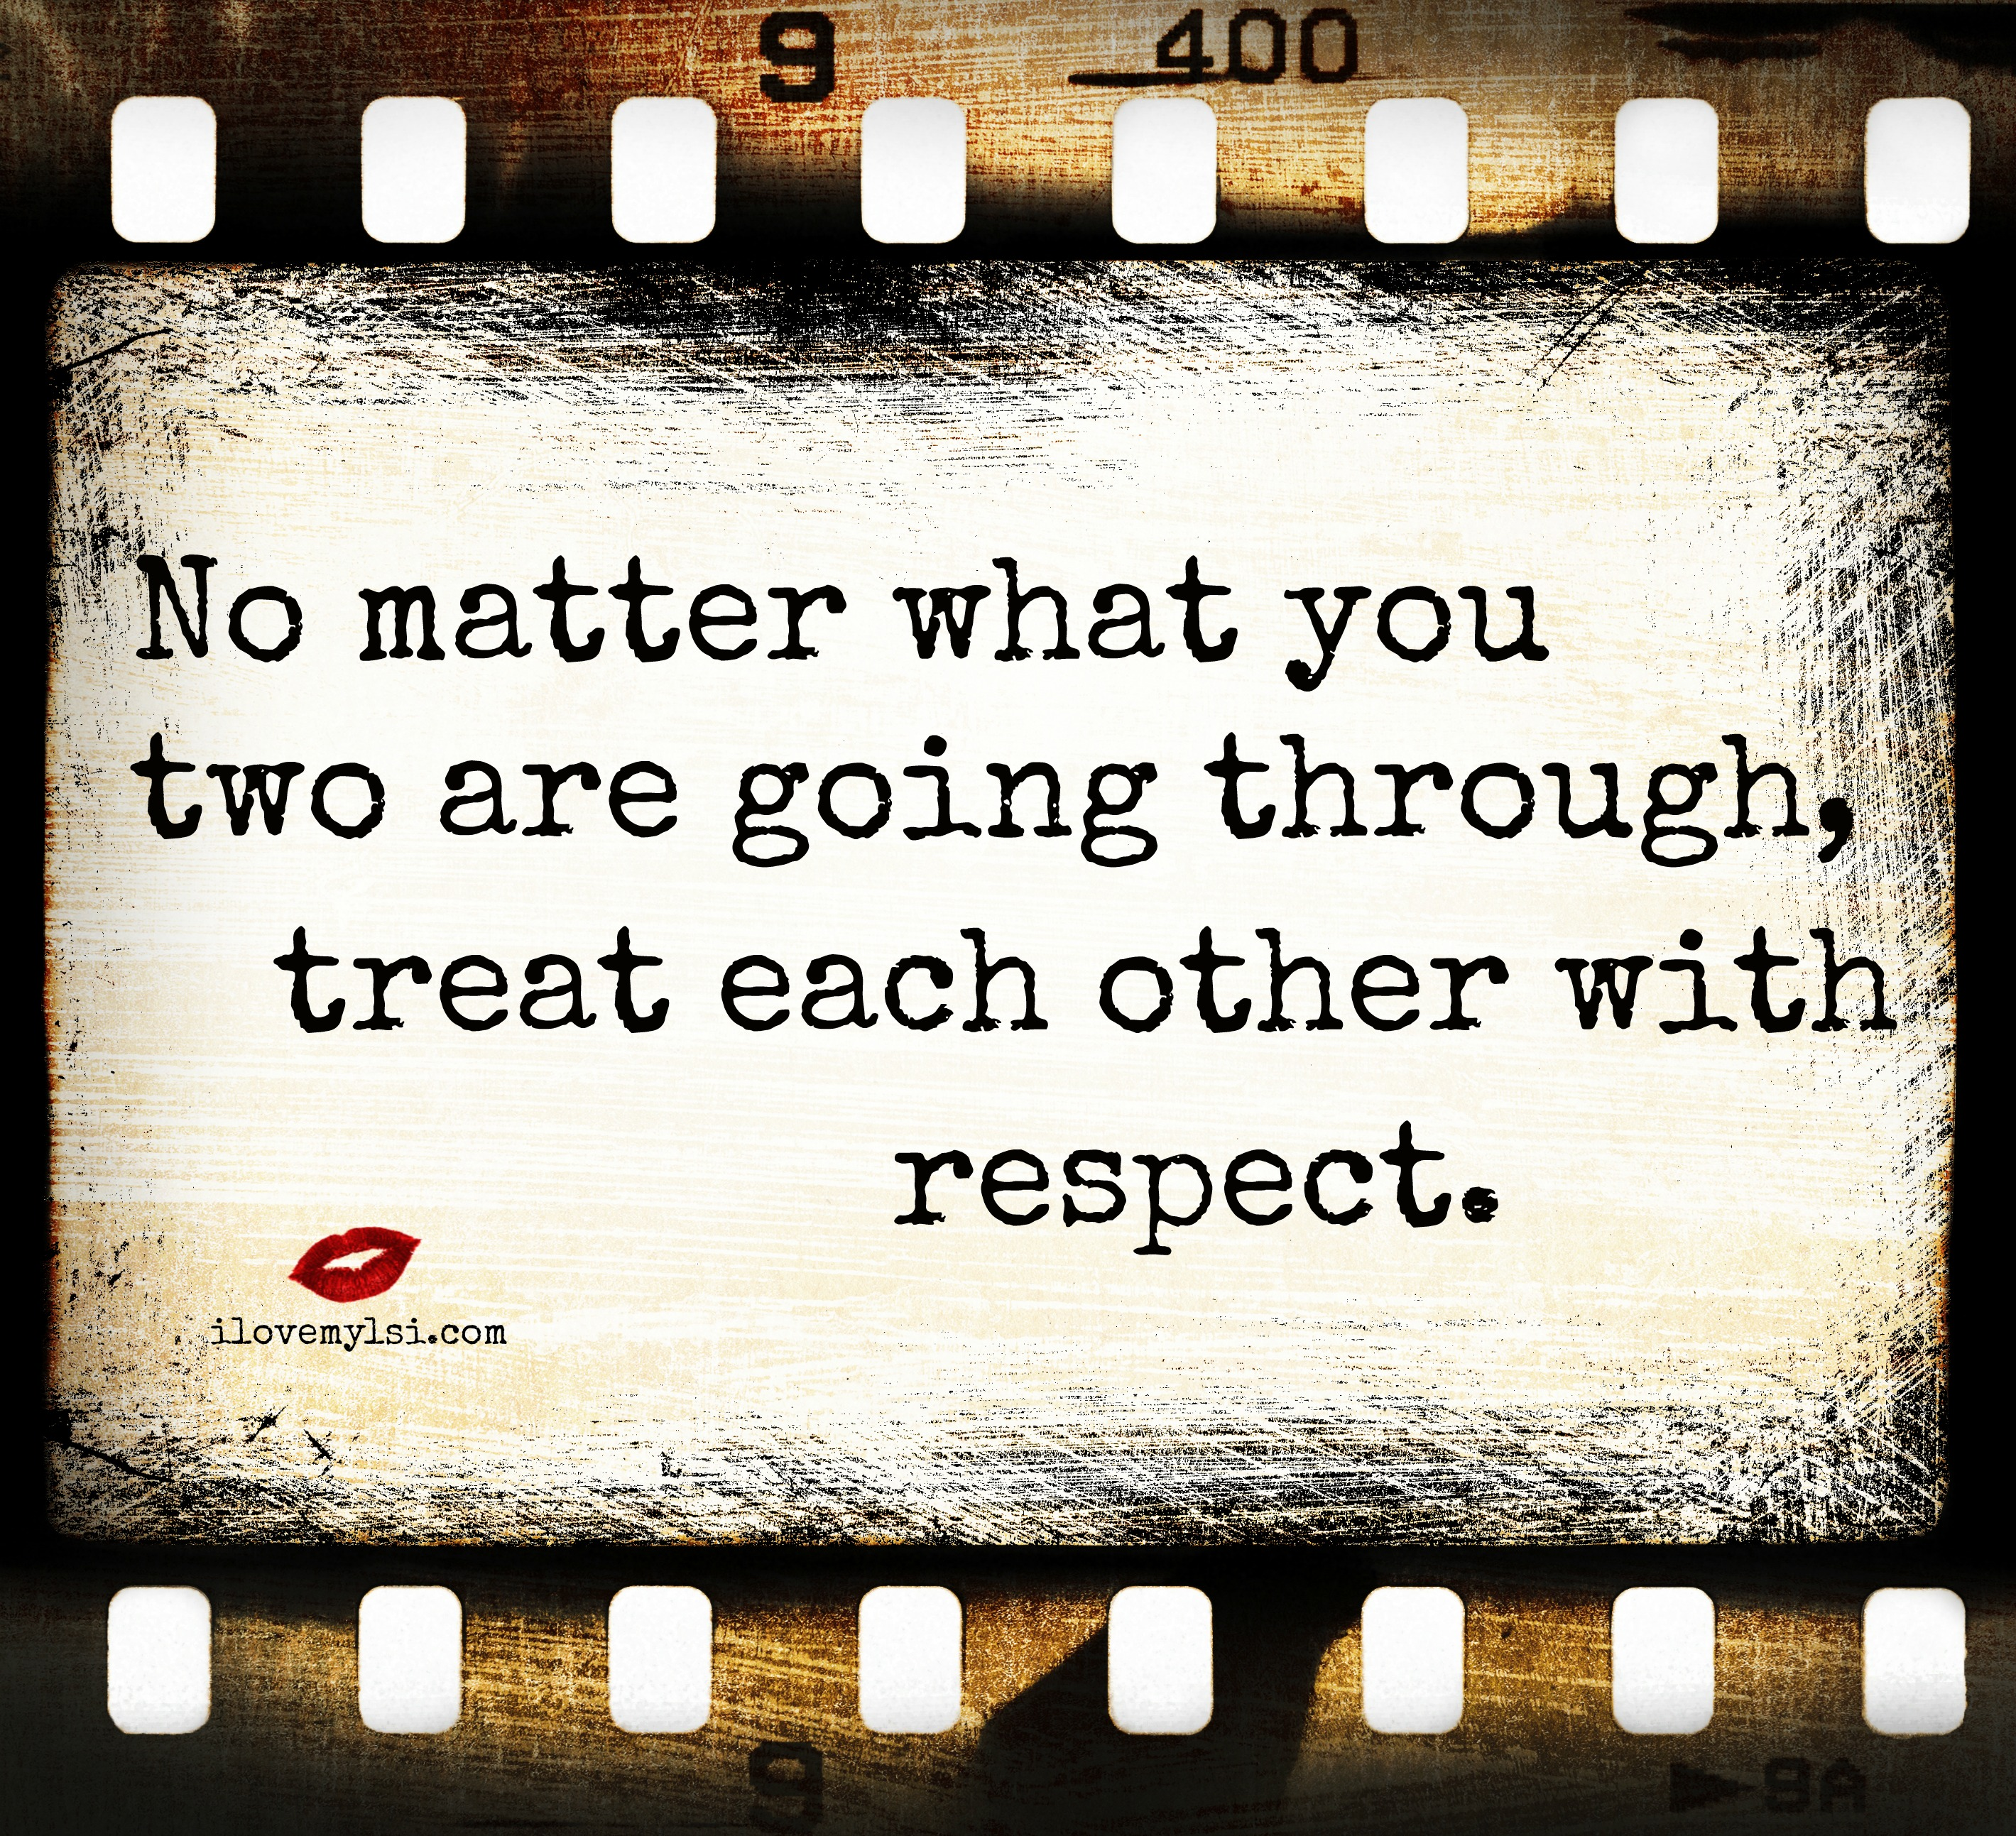 Respect Each Other: Treat Each Other With Respect